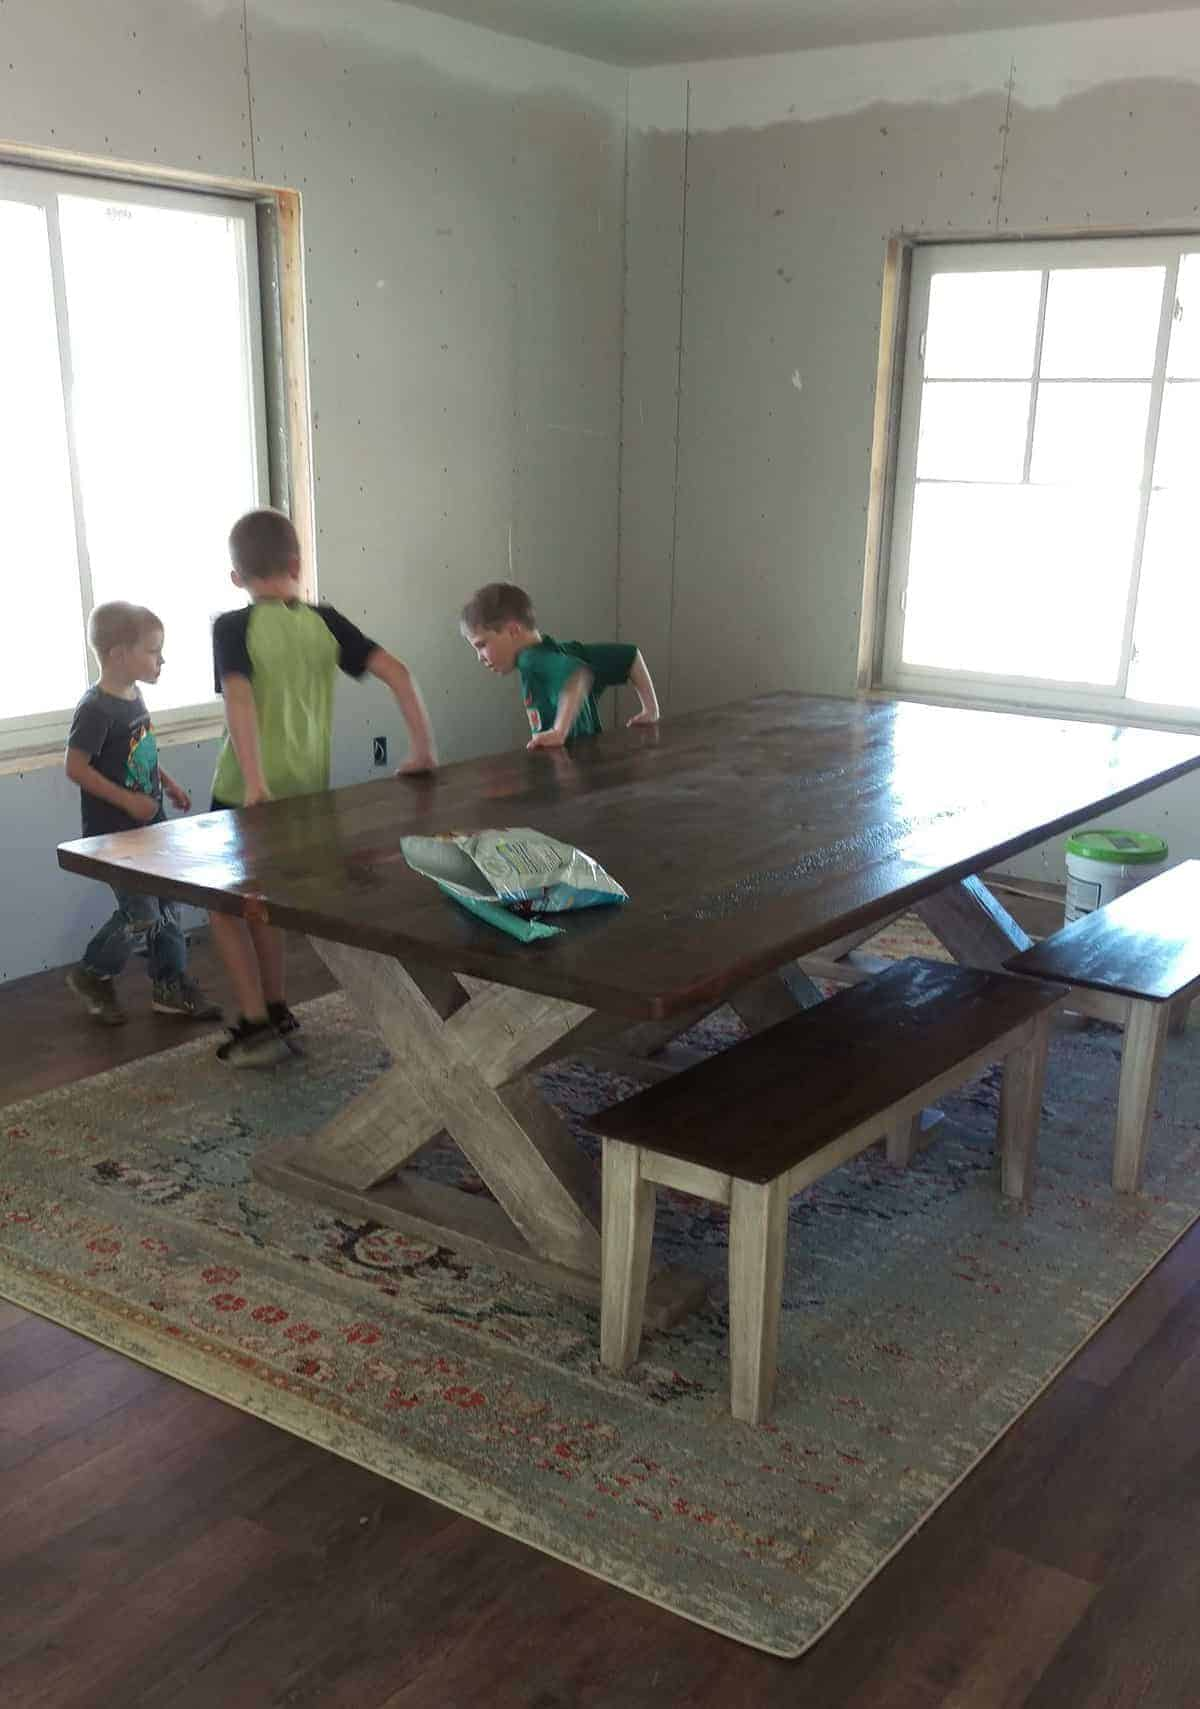 a large rug with a wooden table over it. three young boys play next to it.